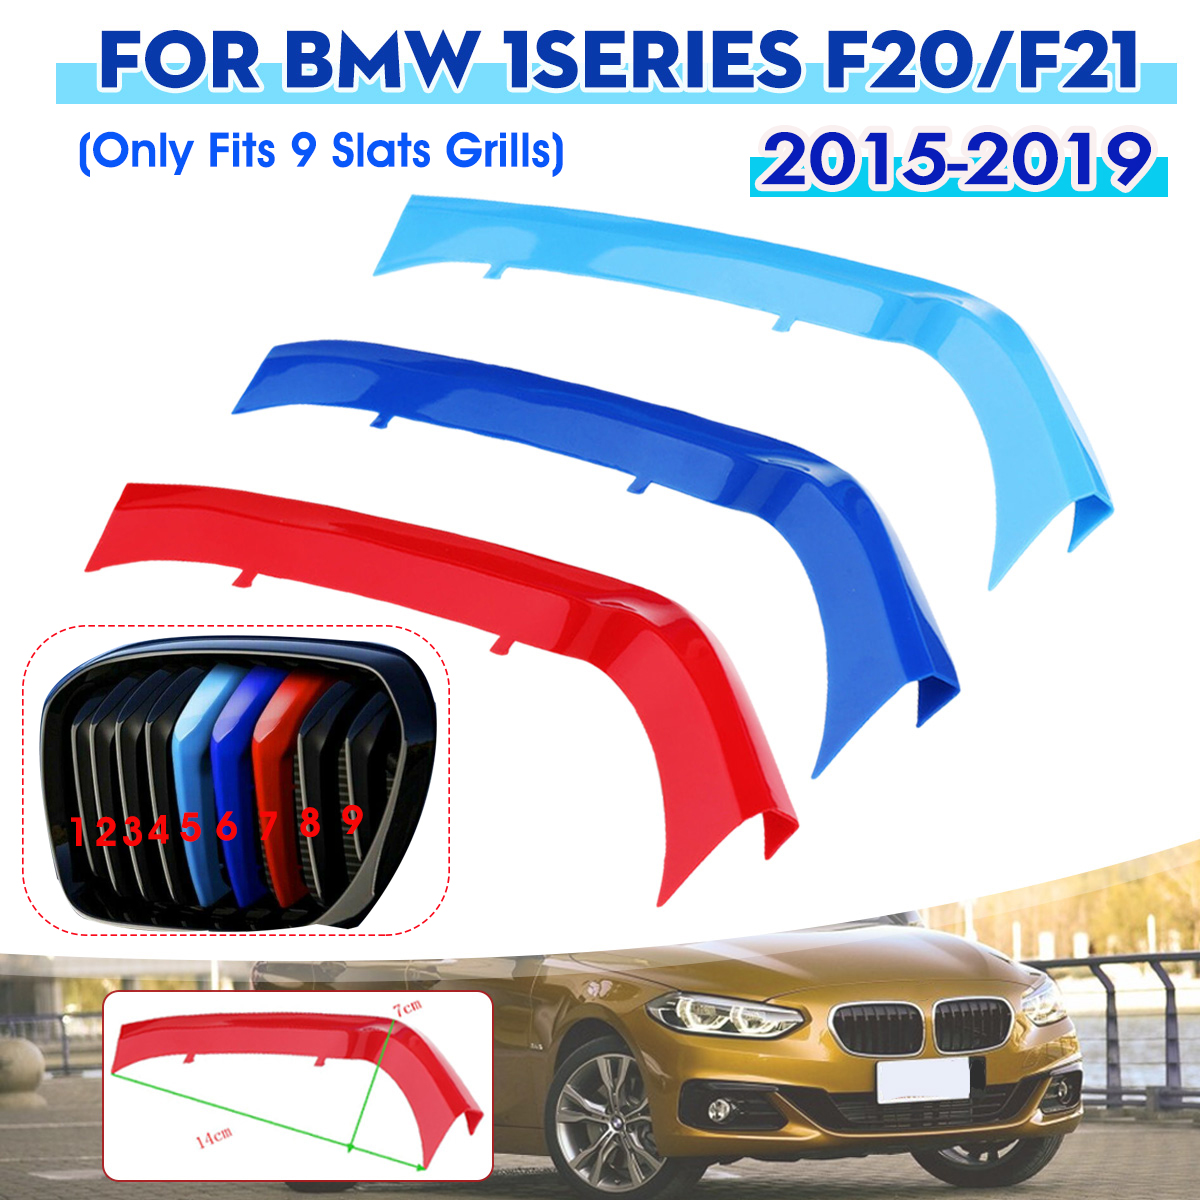 3pcs For BMW 1-Series F20/F21 2015 2016 2017 2018 9 Bar Car Front Grille Trim Sport Strips Cover Stickers Accessories image